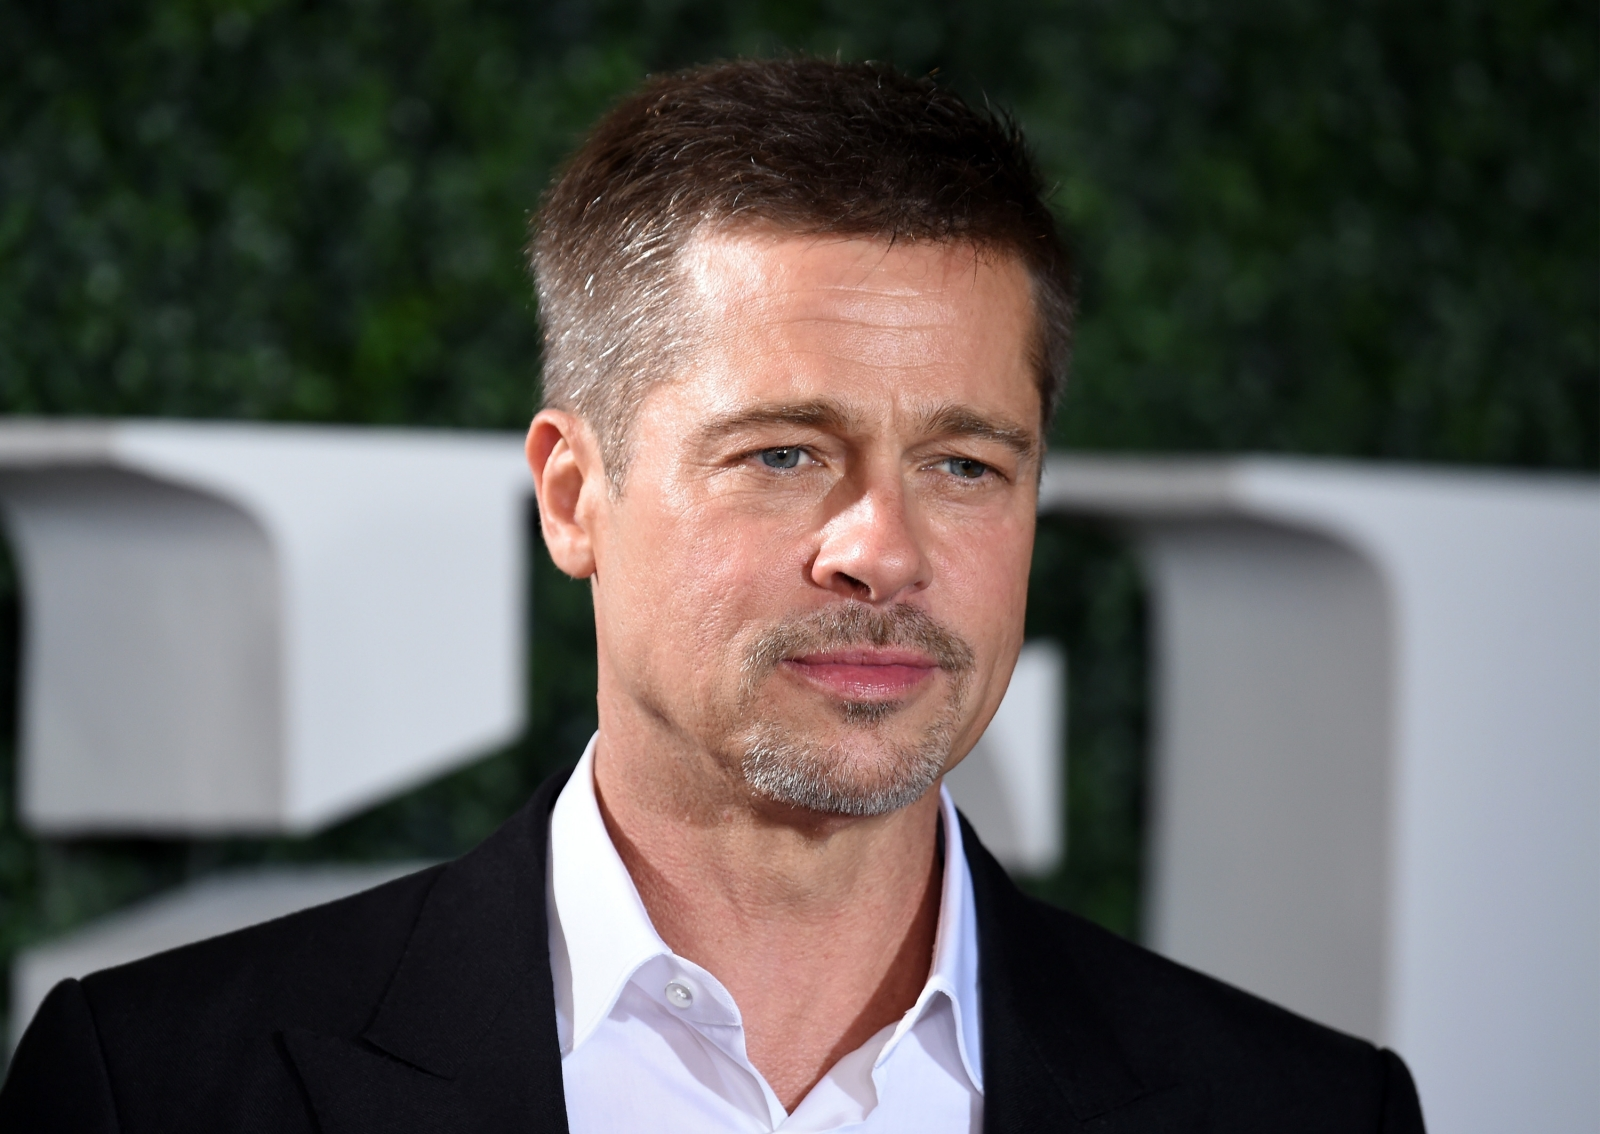 Brad Pitt looks 'tired' and 'worn down', custody battle ...